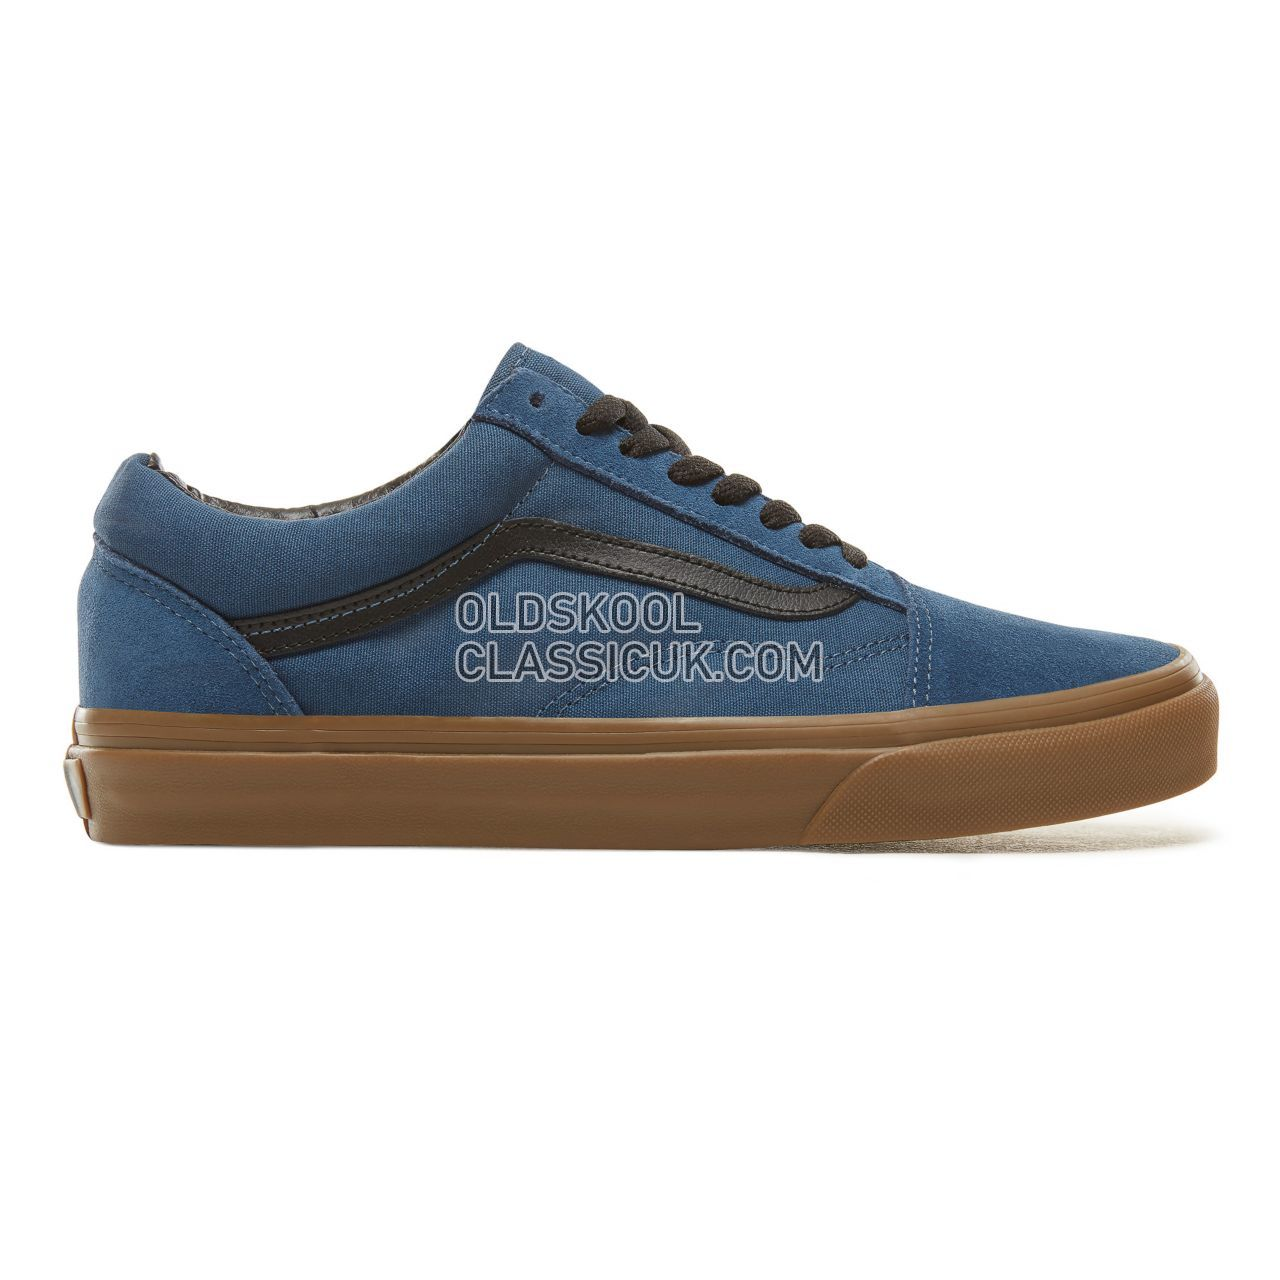 Vans Suede Gum Outsole Old Skool Sneakers Mens Womens Unisex (Gum Outsole) Dark Denim/Black VA38G1U4C Shoes